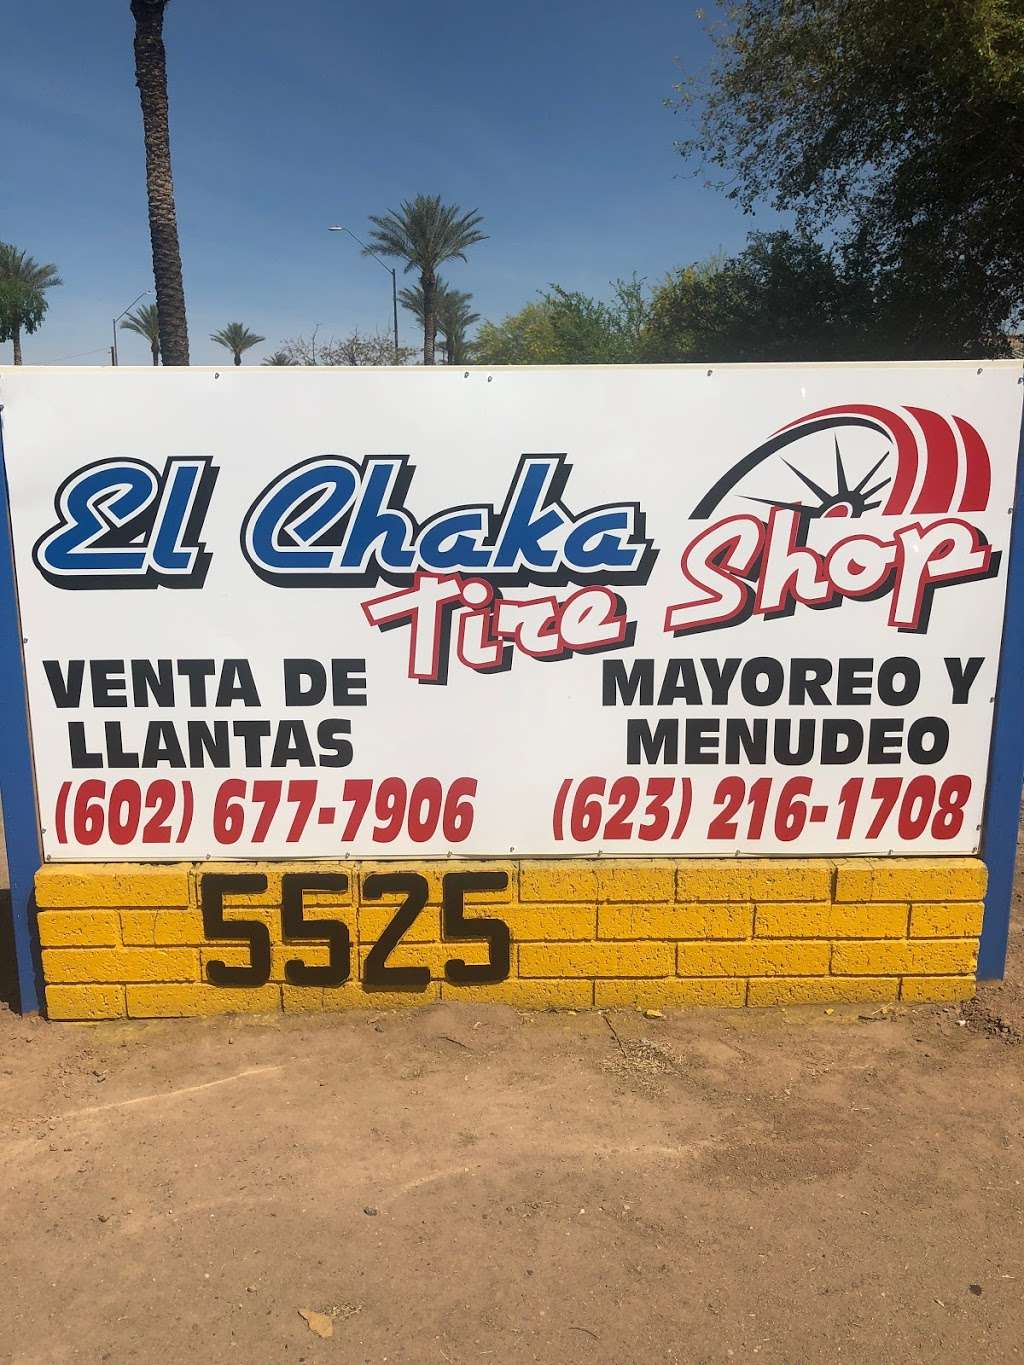 Llantera el chaka - car repair  | Photo 3 of 10 | Address: 5525 N 59th Ave, Glendale, AZ 85301, USA | Phone: (602) 825-8509